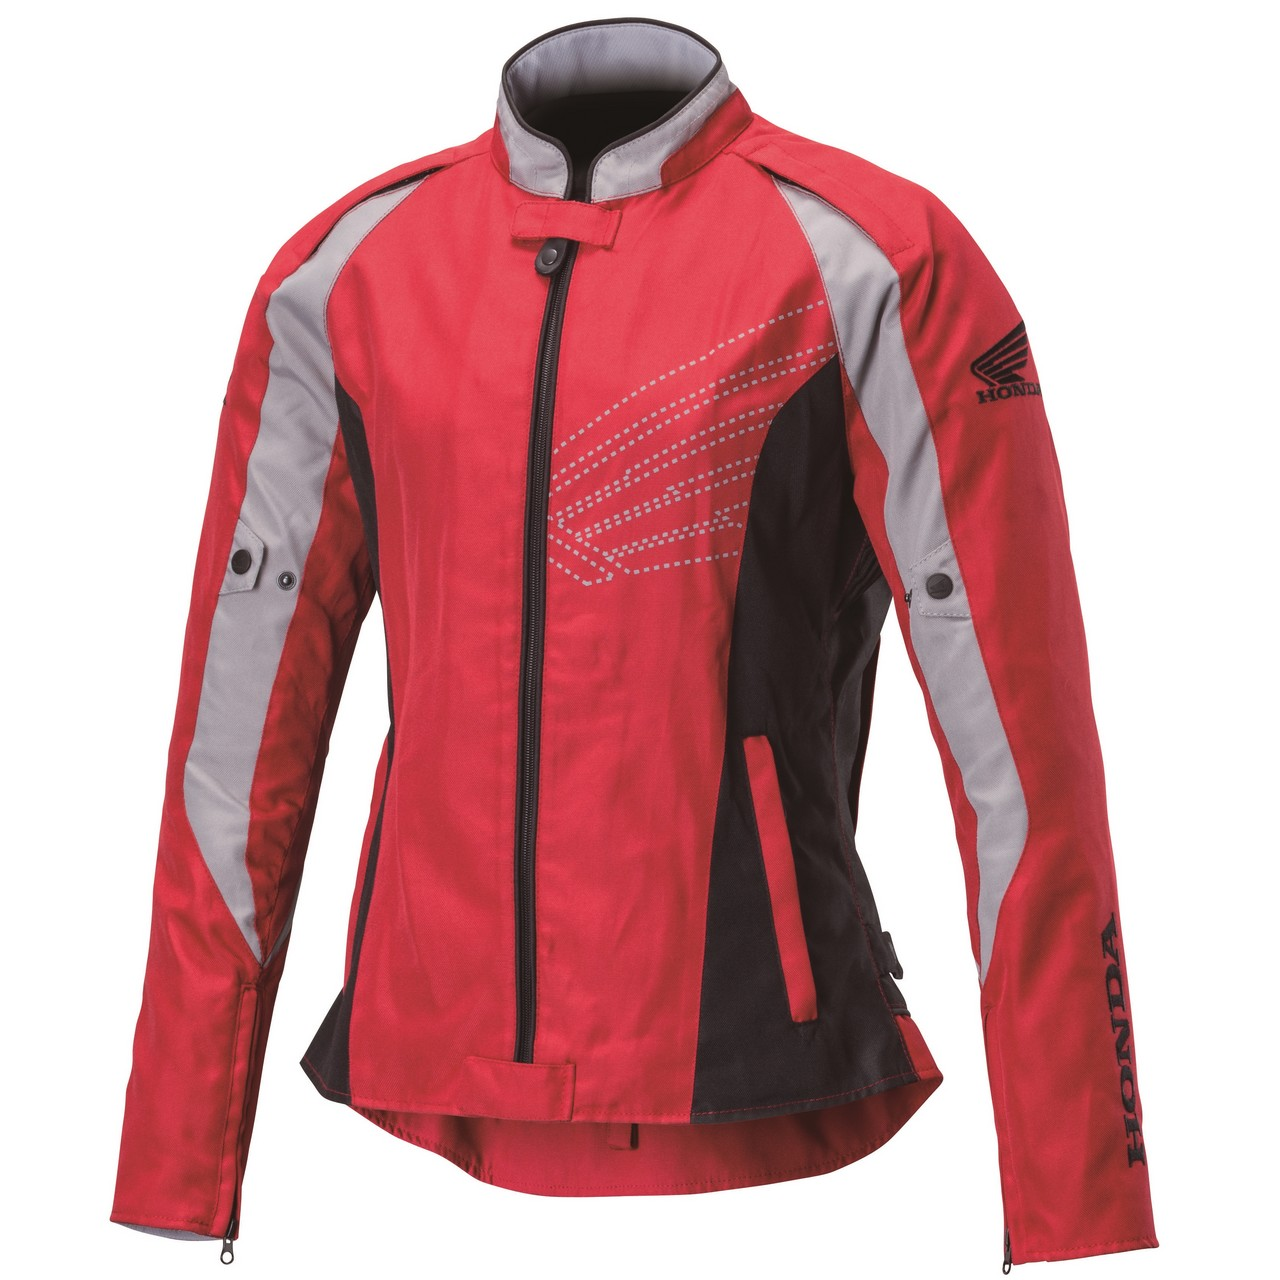 HONDA RIDING GEAR Riding Blouson